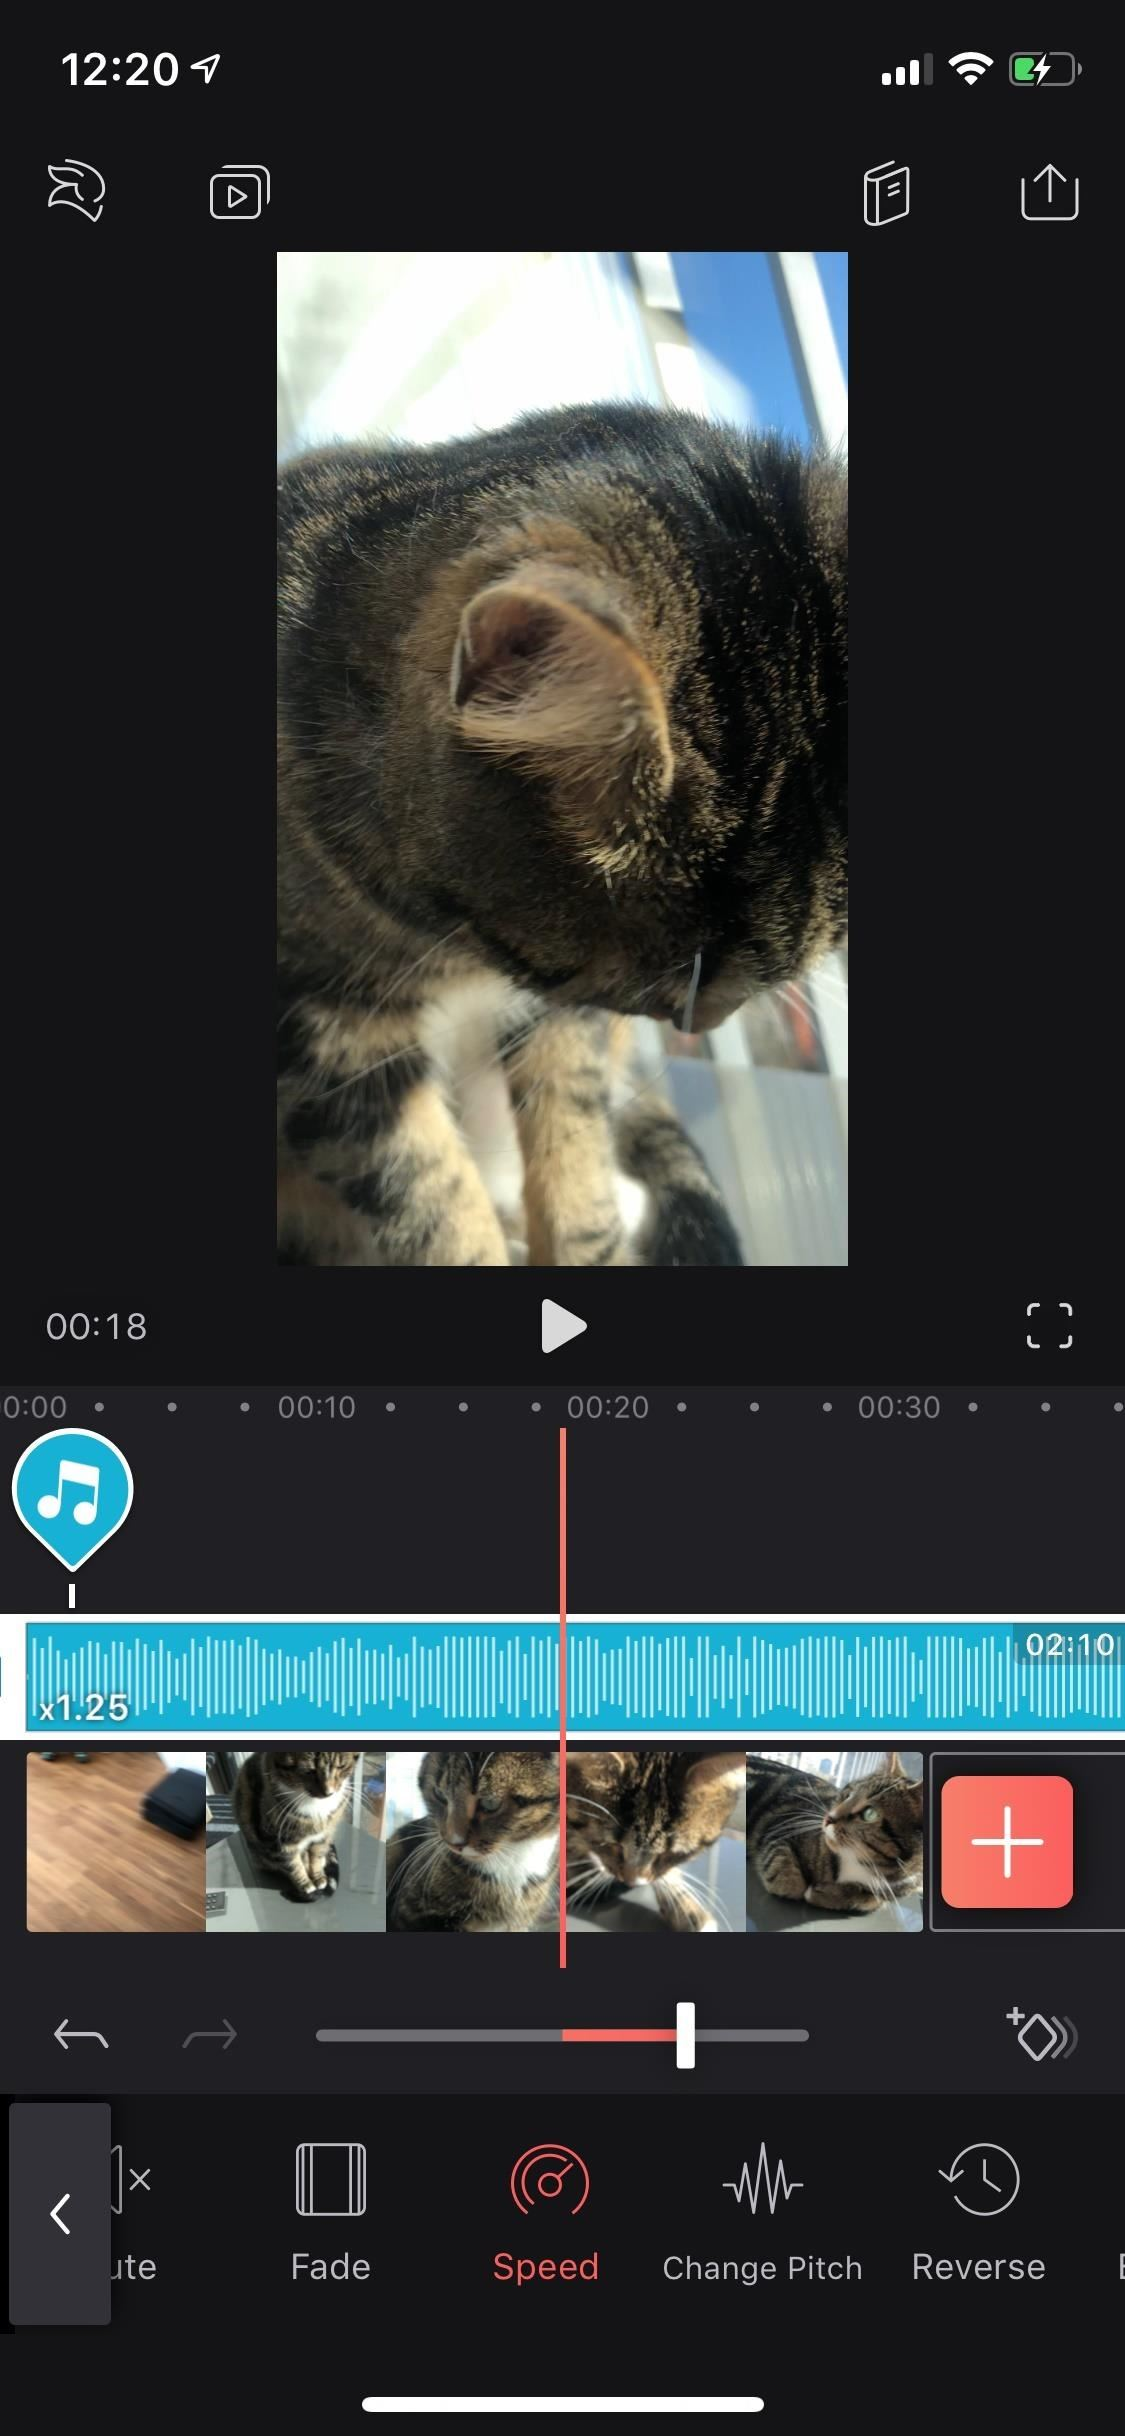 Everything You Need to Know About Adding & Editing Audio for Videos in Enlight Videoleap for iPhone